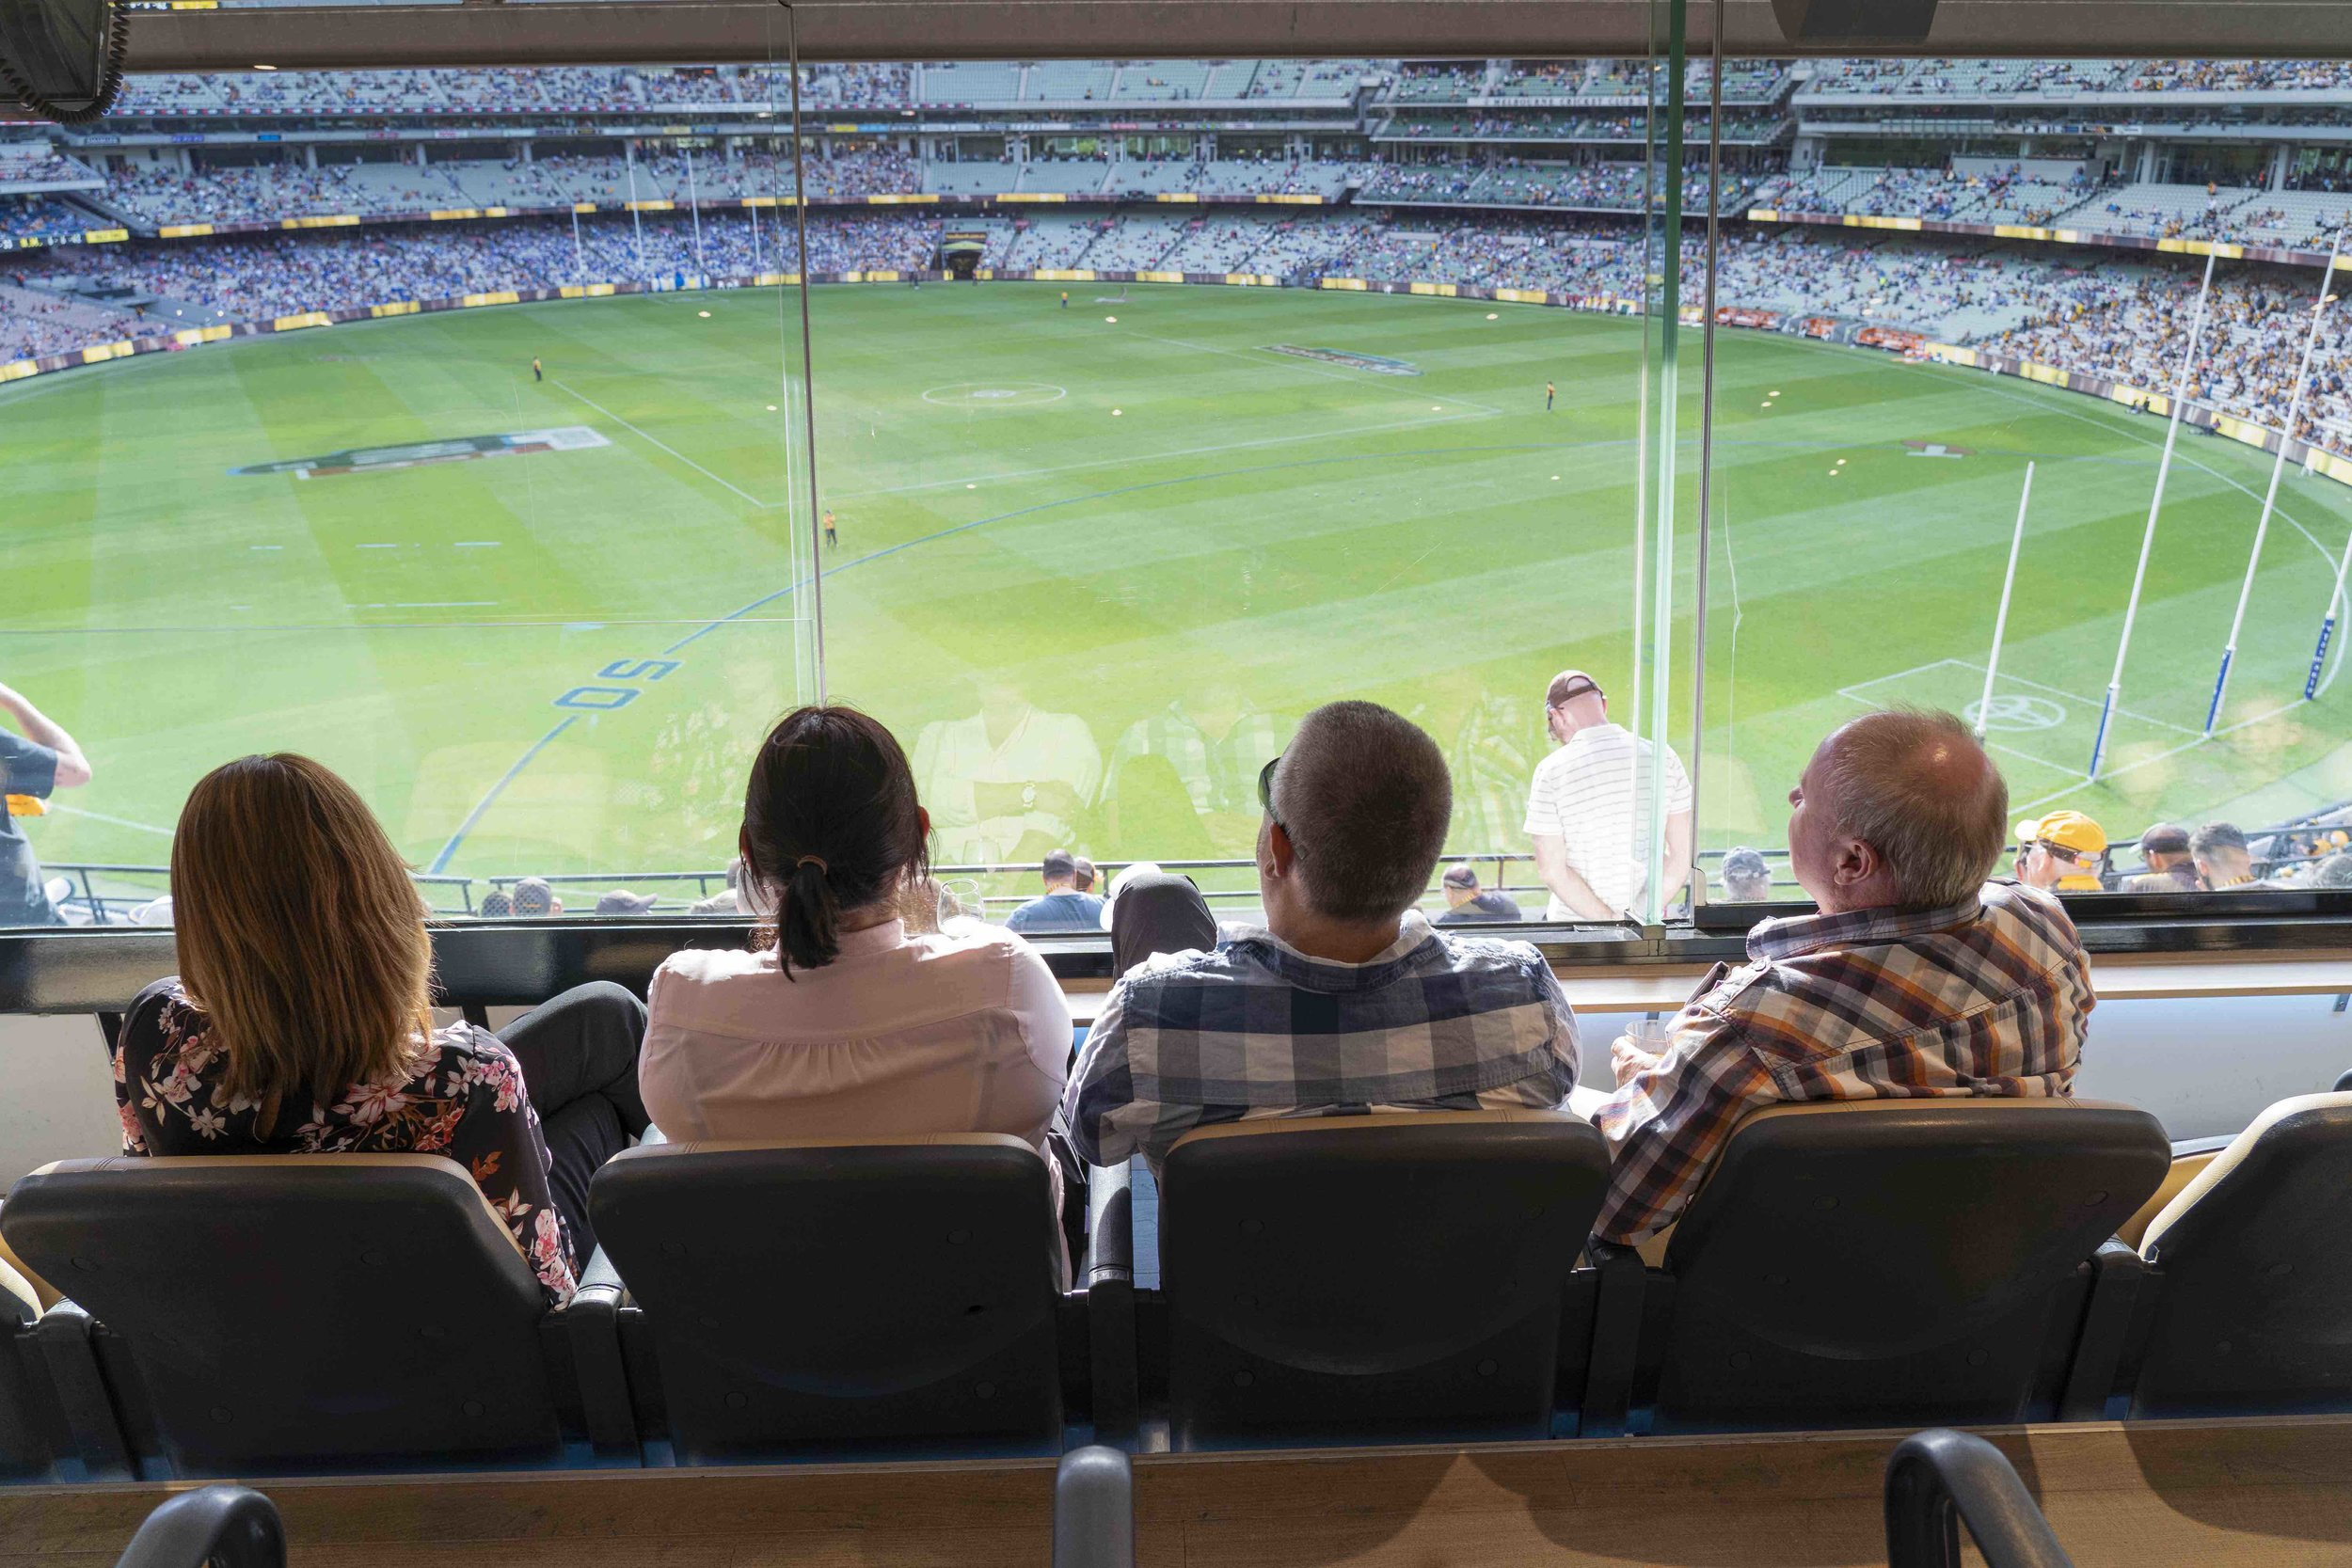 Corporate Box Concerts and Events Melbourne